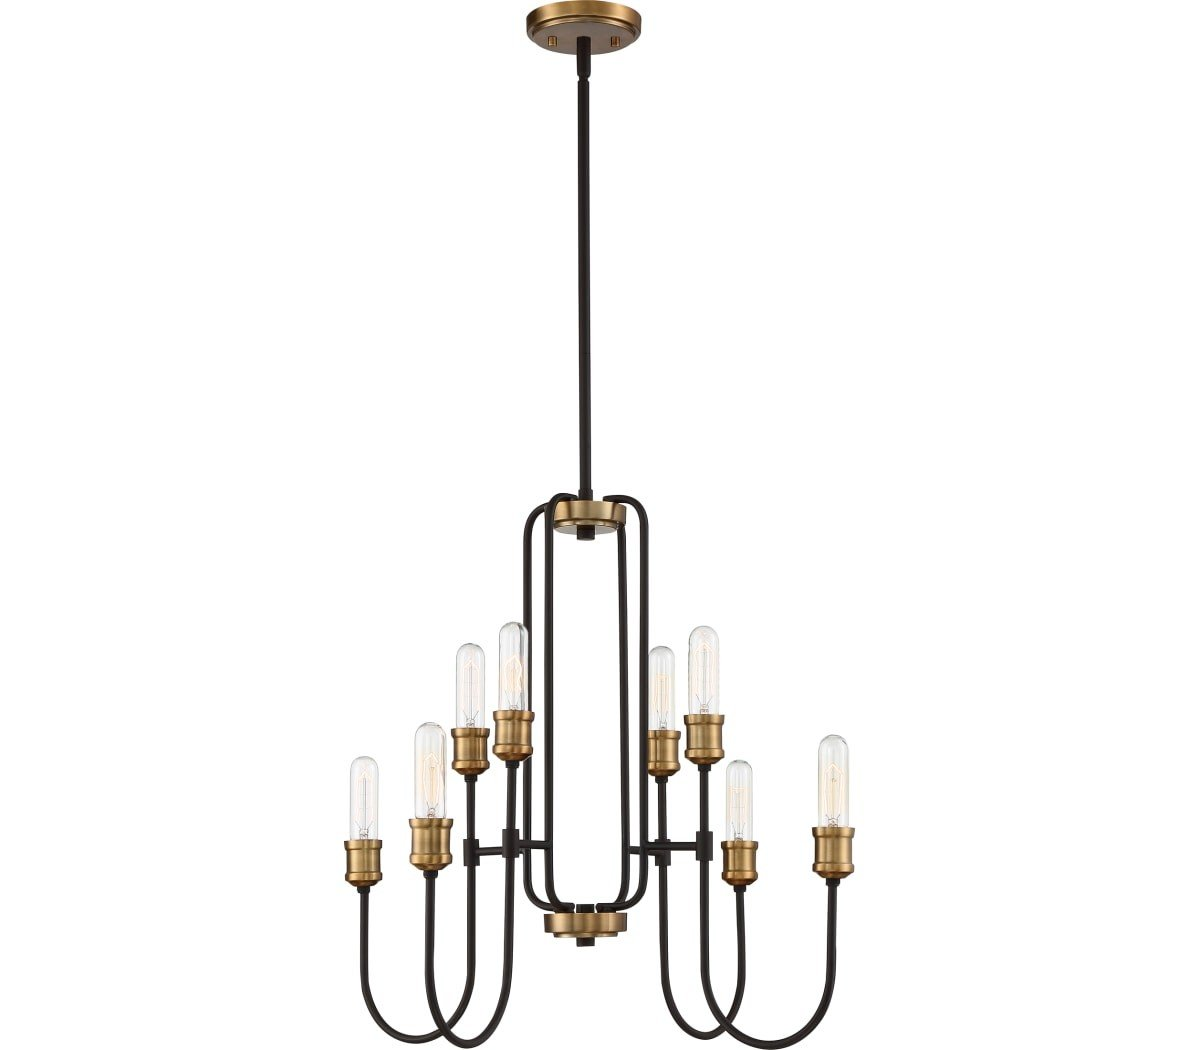 quoizel lighting channel quoizel-channel-chandelier-1